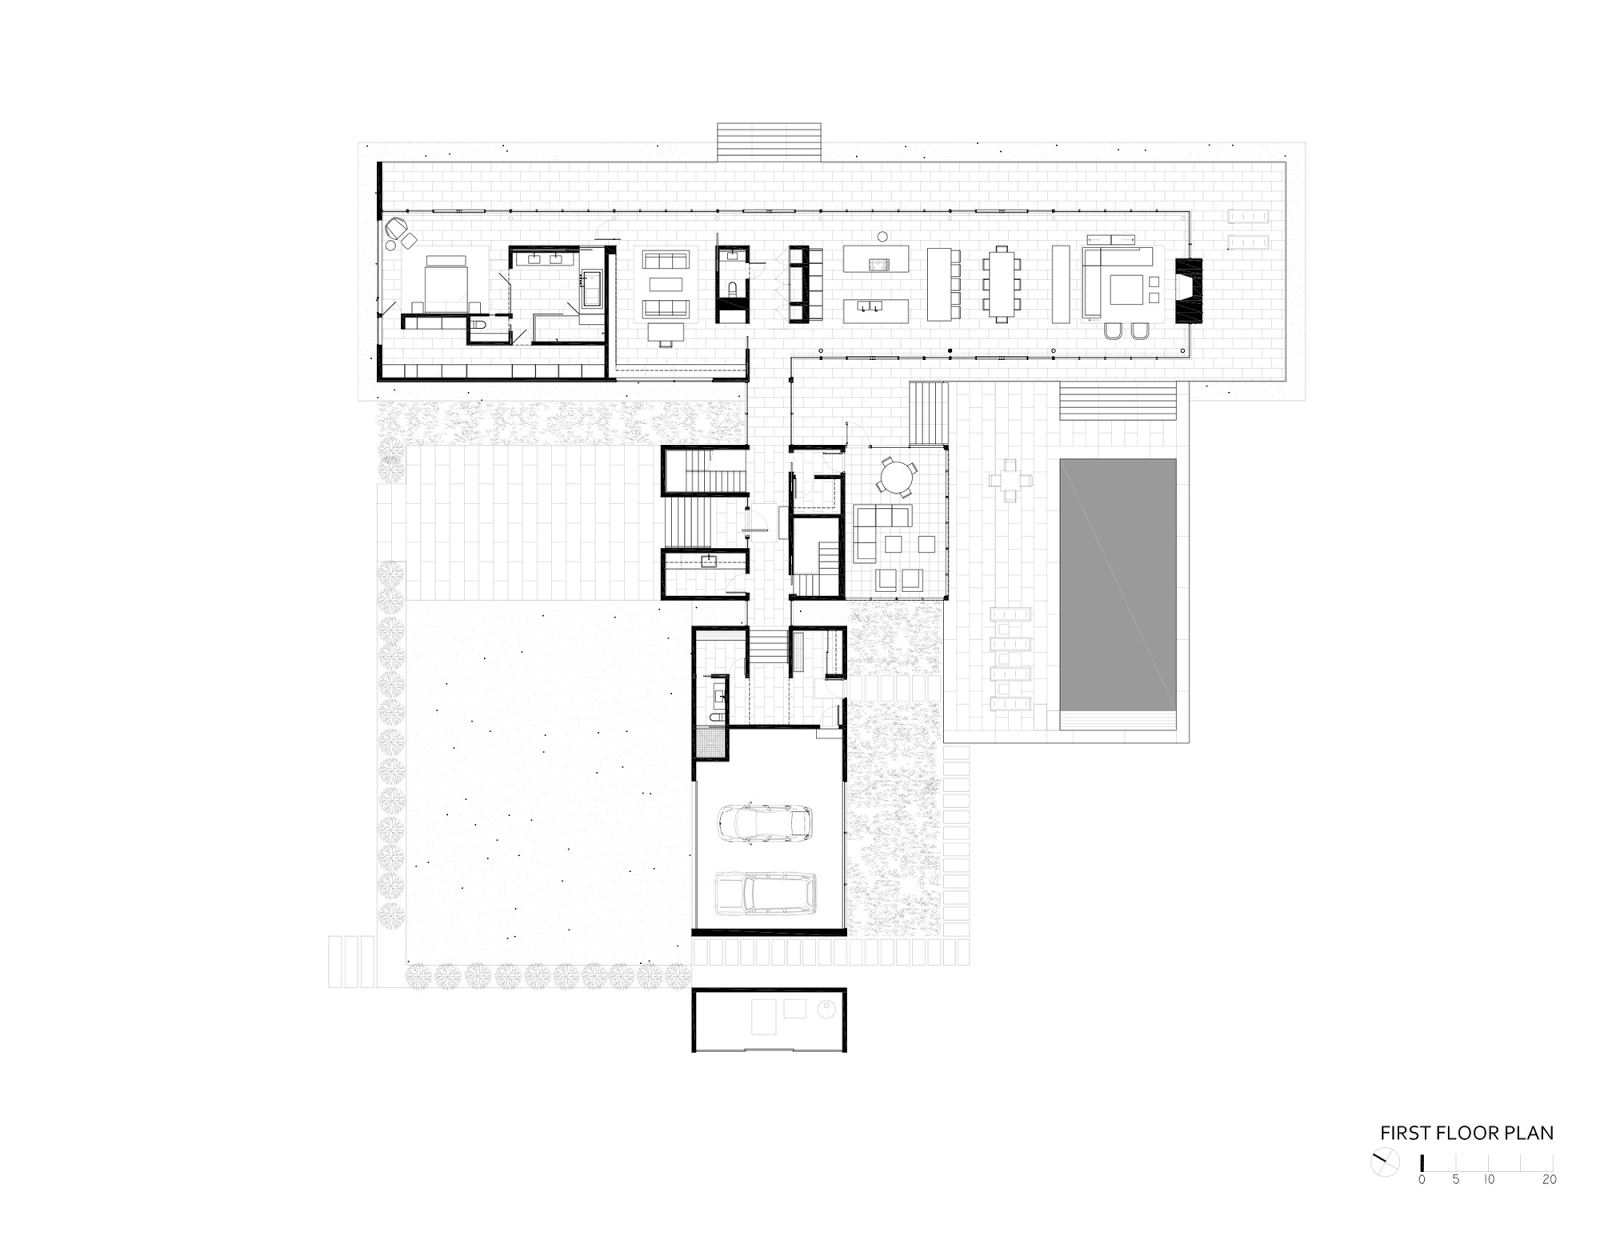 Architecture as aesthetics tred avon river house robert for River house plans